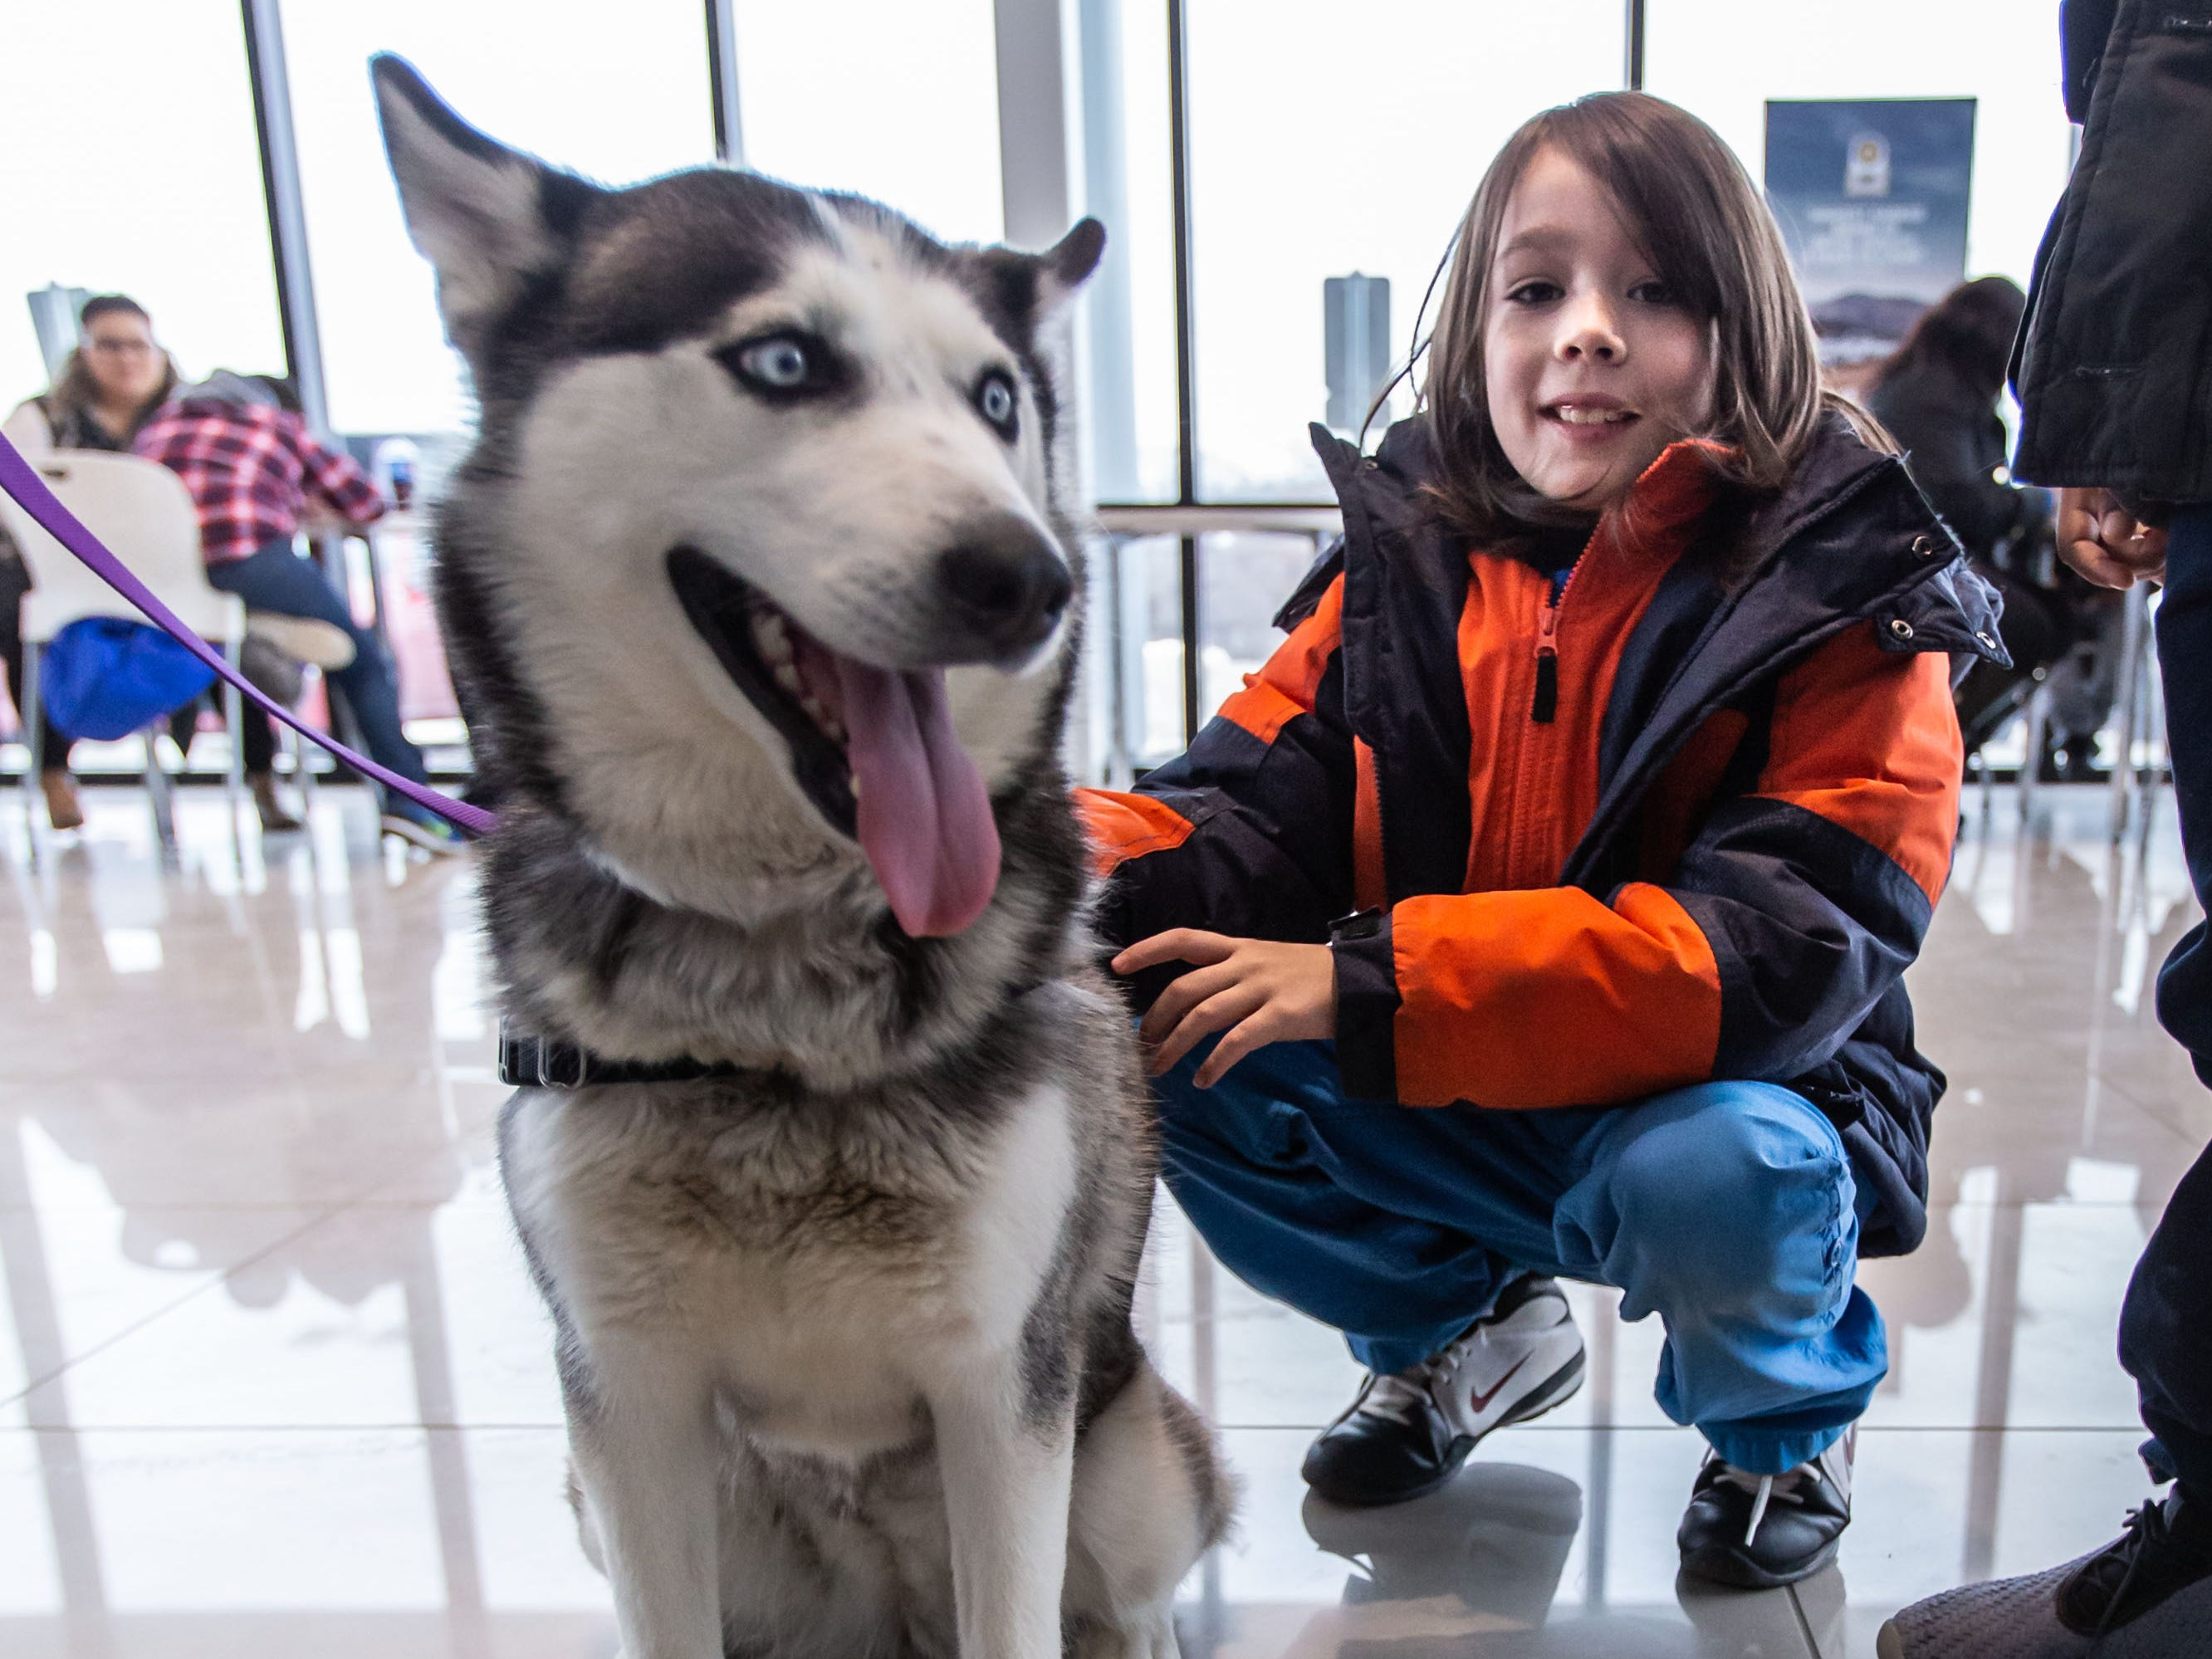 Eight-year-old Oliver H. of Milwaukee makes a new friend during the Adopt a Pet program at Russ Darrow Kia of Wauwatosa on Saturday, March 9, 2019. The event, held in partnership with the Humane Animal Welfare Society (HAWS) in Waukesha and the German Shepard Dogs Club of Wisconsin (GSDCW), offered attendees the opportunity to meet and adopt dogs, cats, rabbits, and other types of animals.